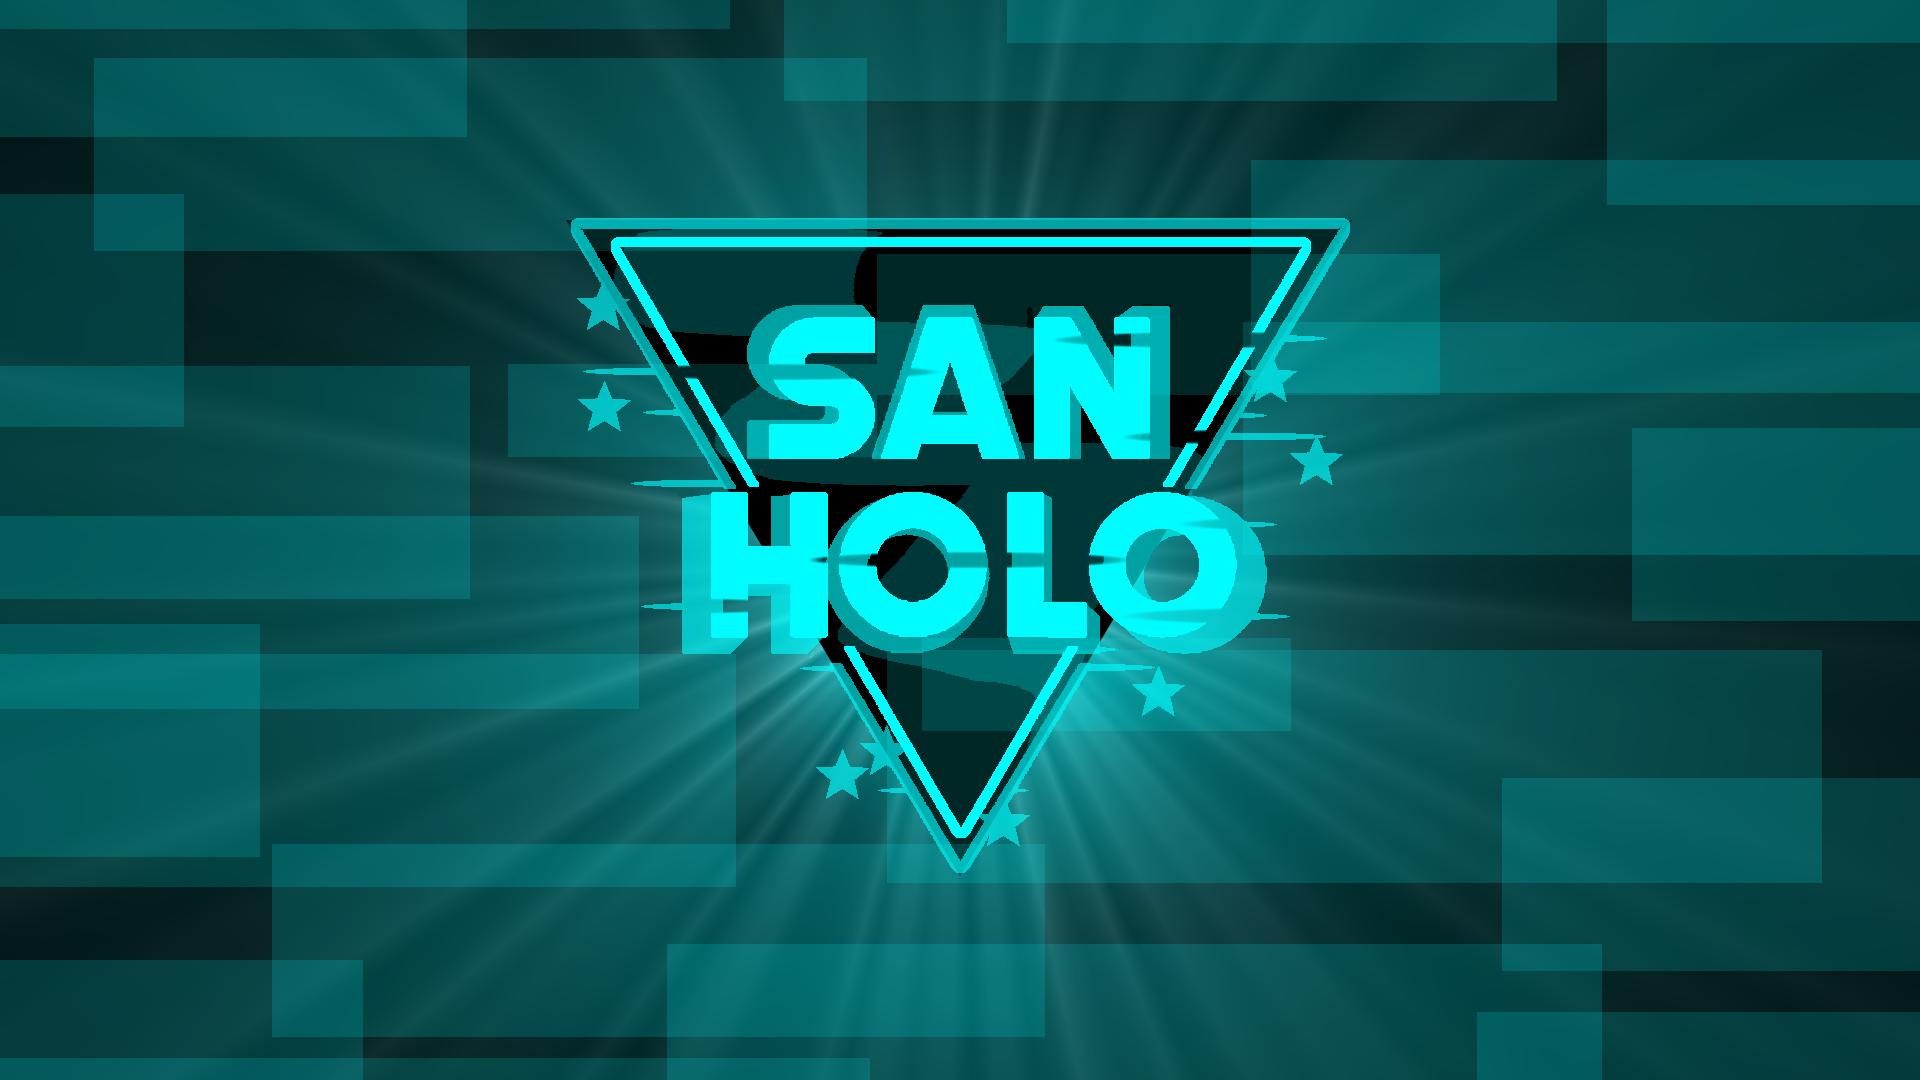 san holo desktop wallpaper 67220